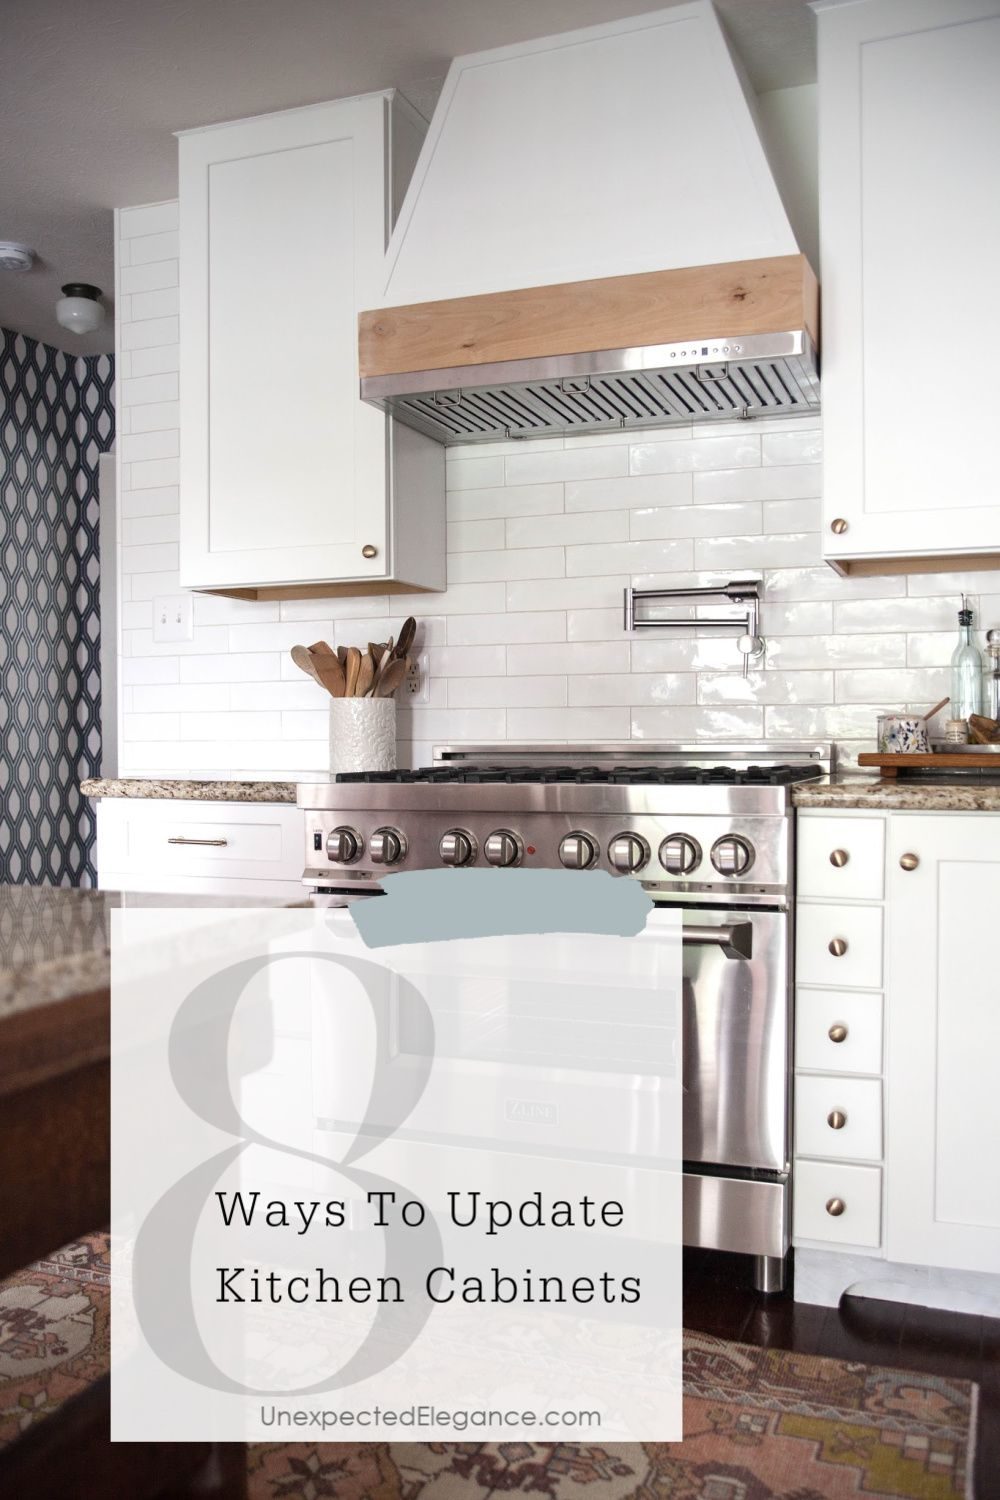 8 Ways To Update Kitchen Cabinets In 2020 Kitchen Cabinets Kitchen Cupboard Doors Update Kitchen Cabinets